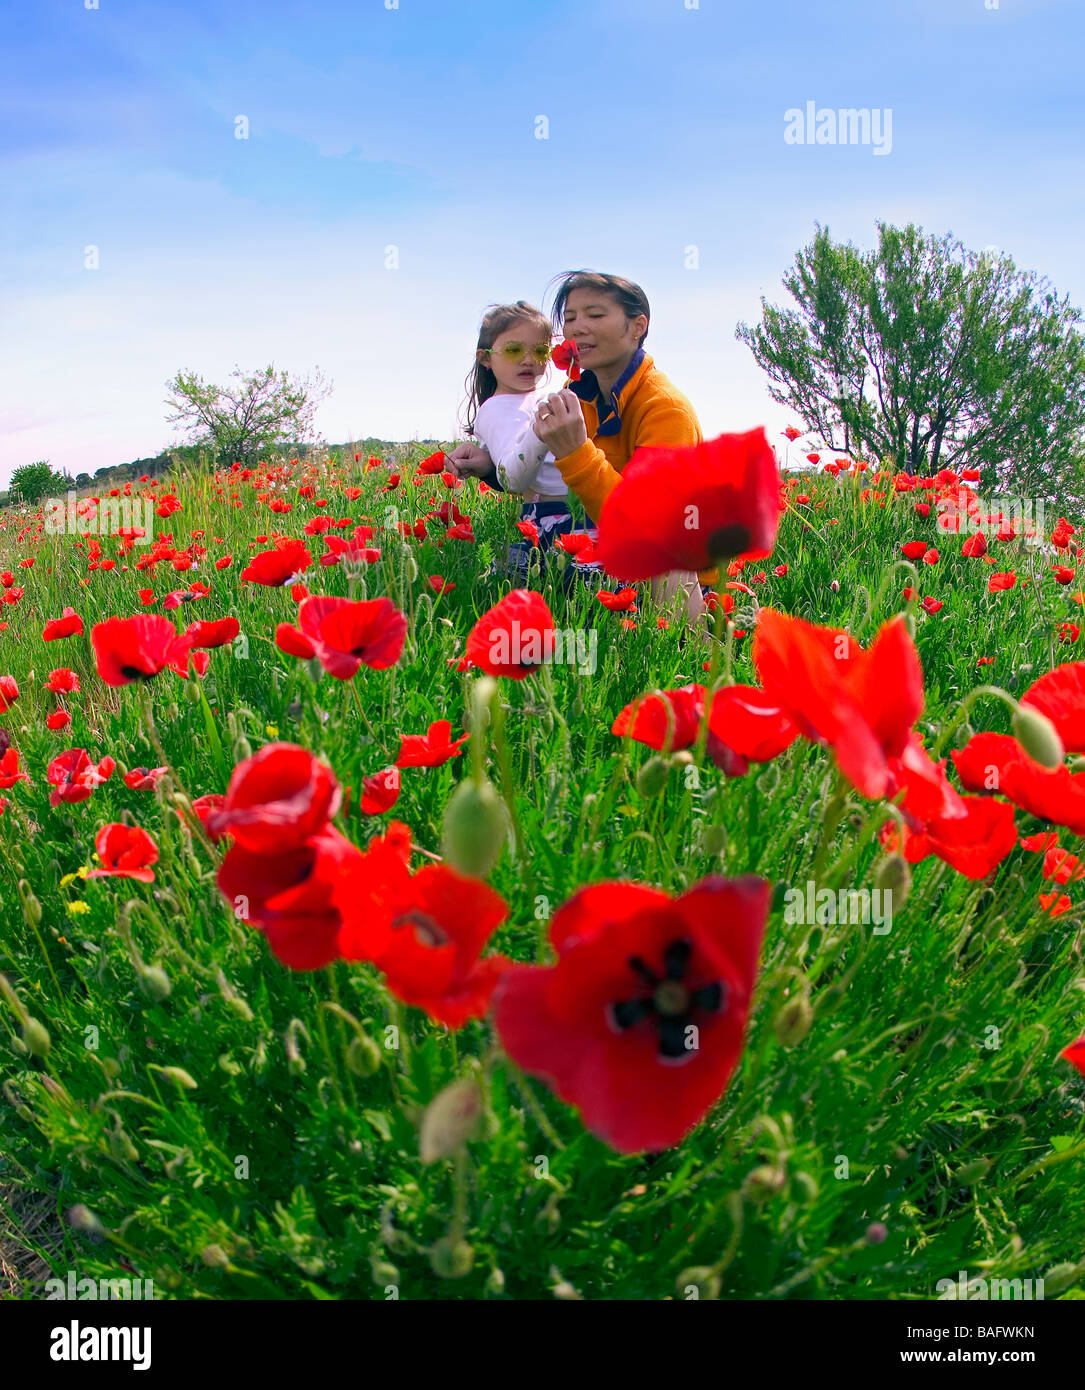 Mother and daughter in poppy field; Saint-Rémy-de-Provence, Provence, France - Stock Image